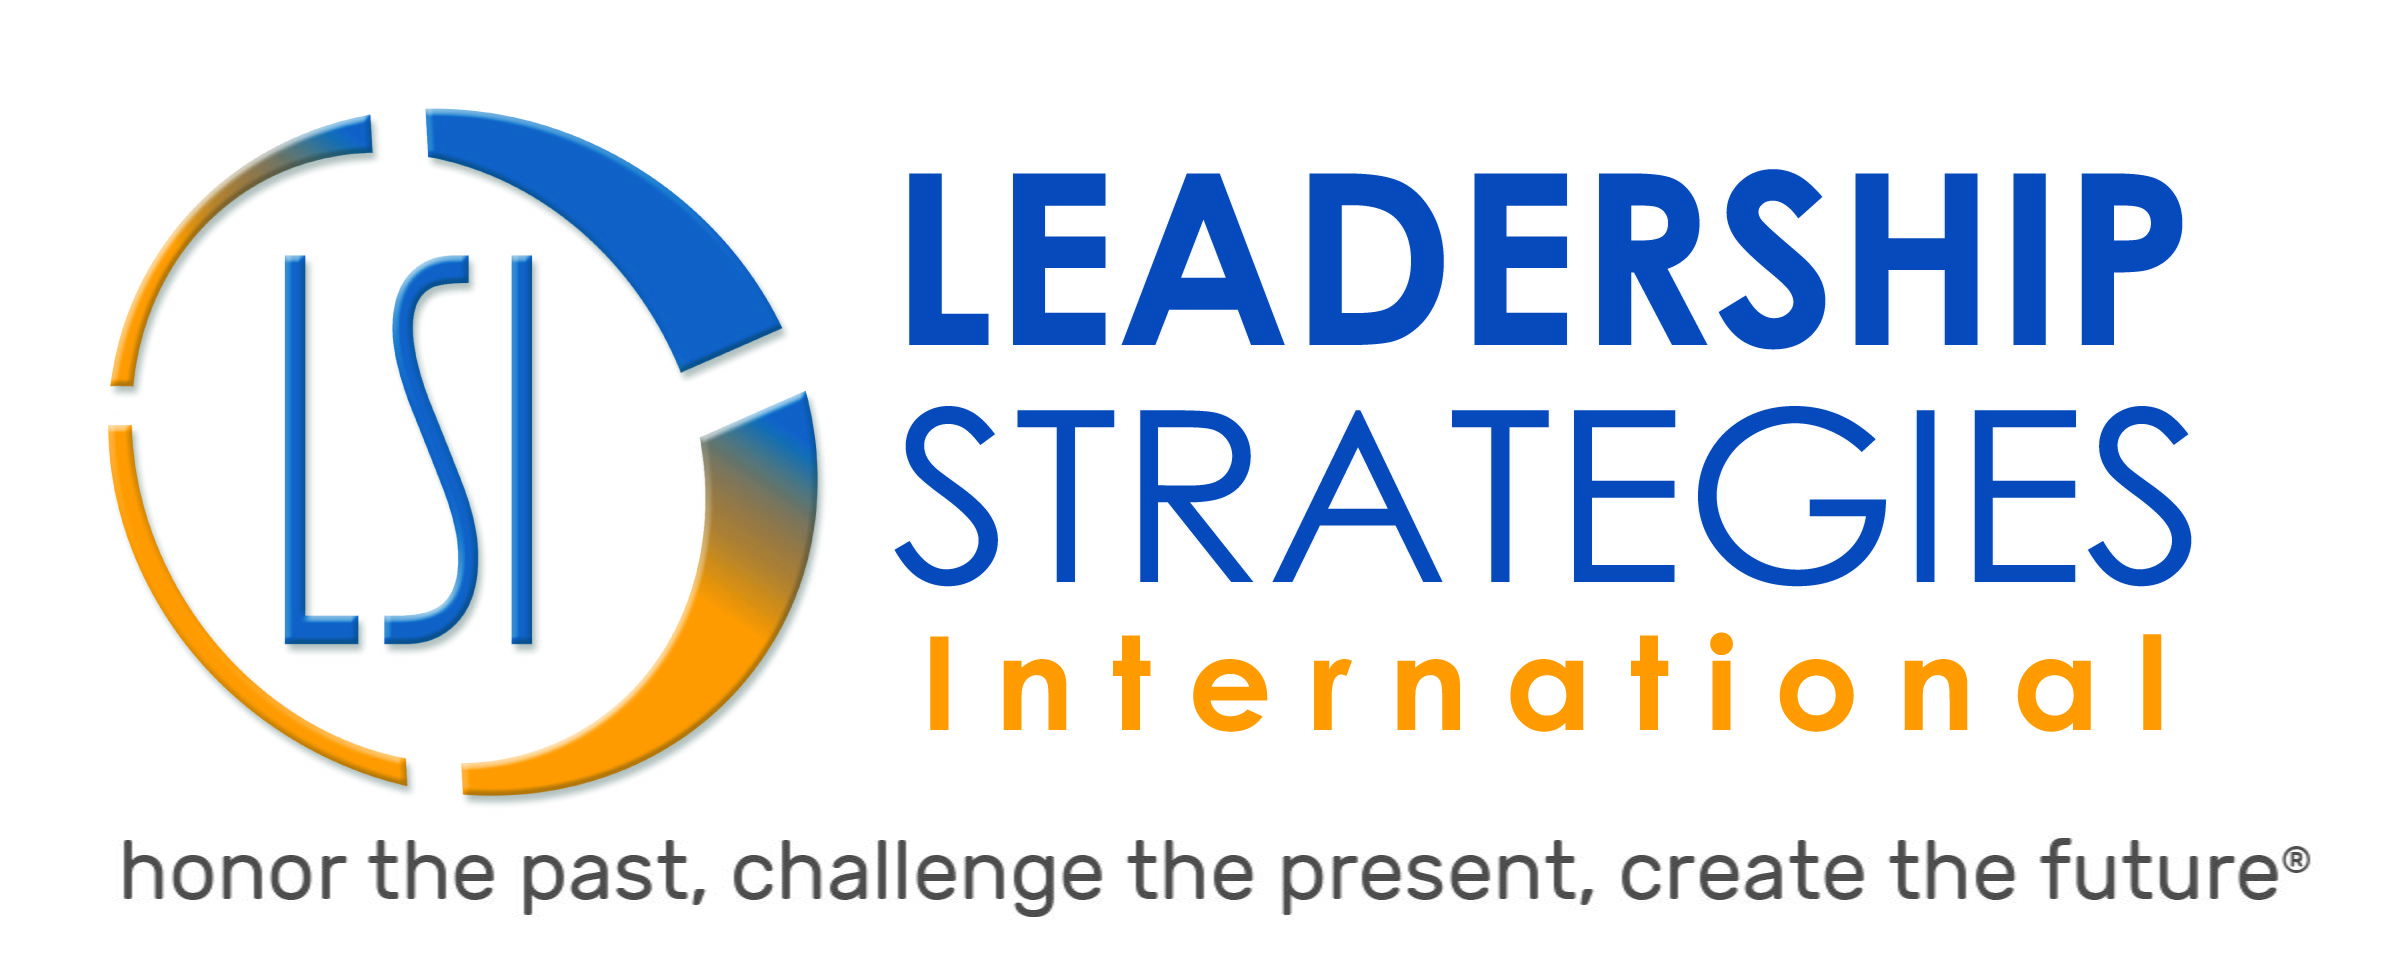 Leadership Strategies International